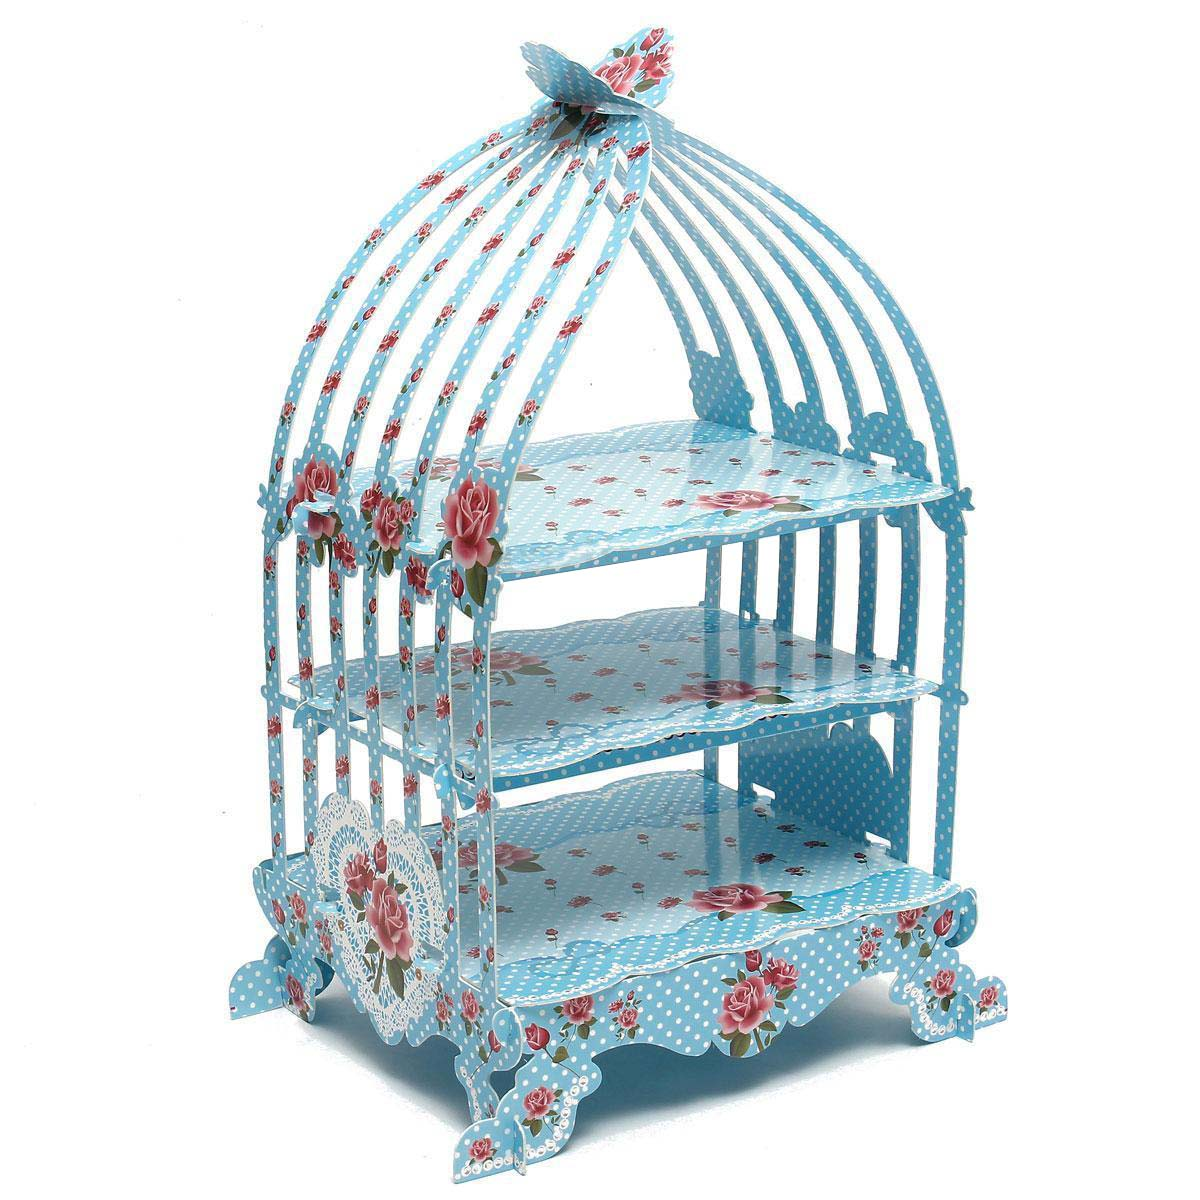 3 layers Birdcage Cupcake Cardboard Cake Stand Vintage Wedding Tea Party Display Holder Total Height approx 48.5cm